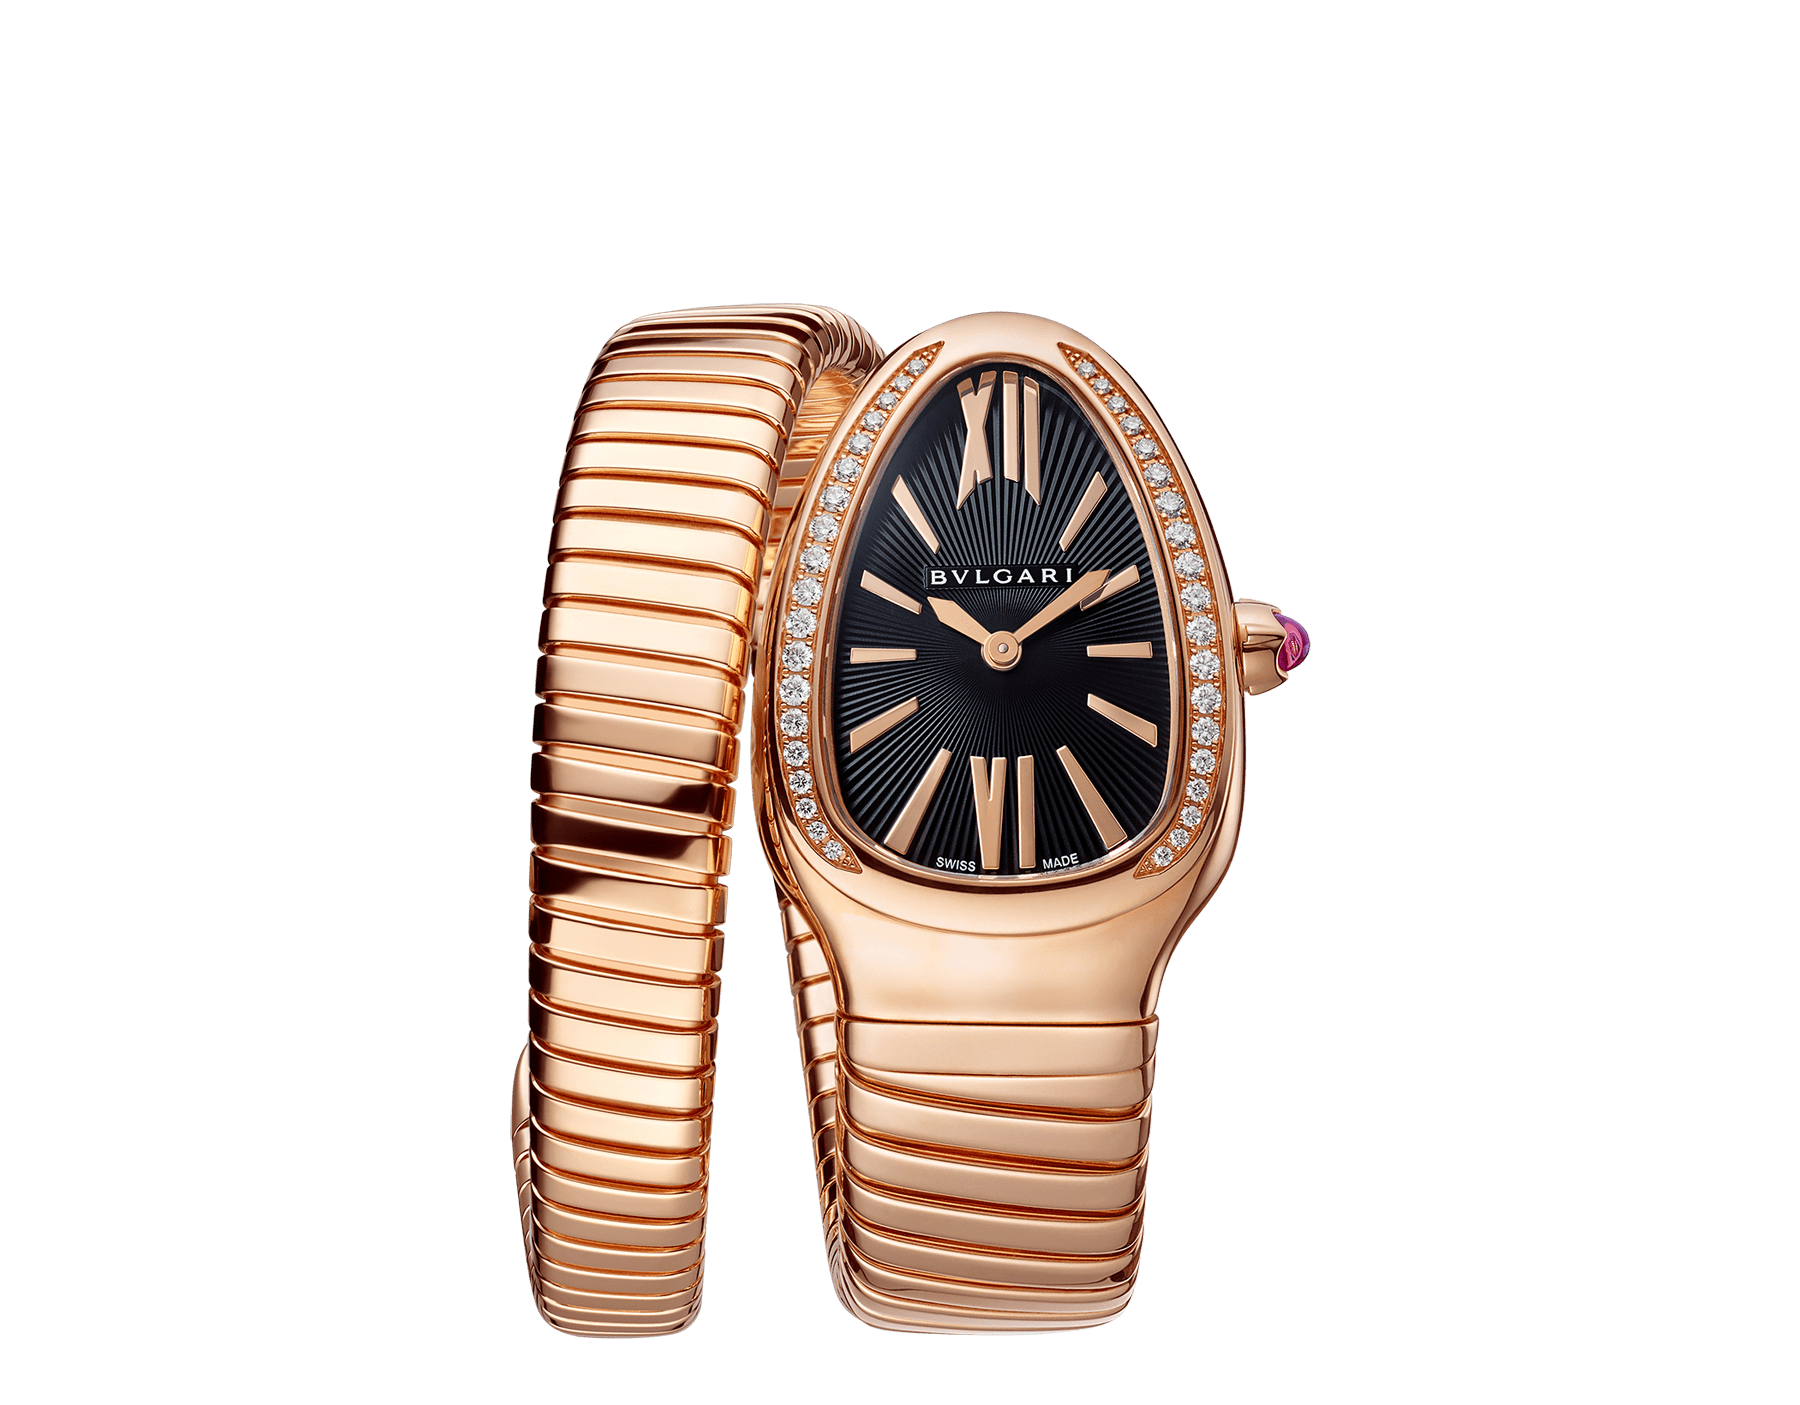 Serpenti Tubogas single spiral watch with 18 kt rose gold case set with brilliant cut diamond, black opaline dial and 18kt rose gold bracelet. 101815 image 1